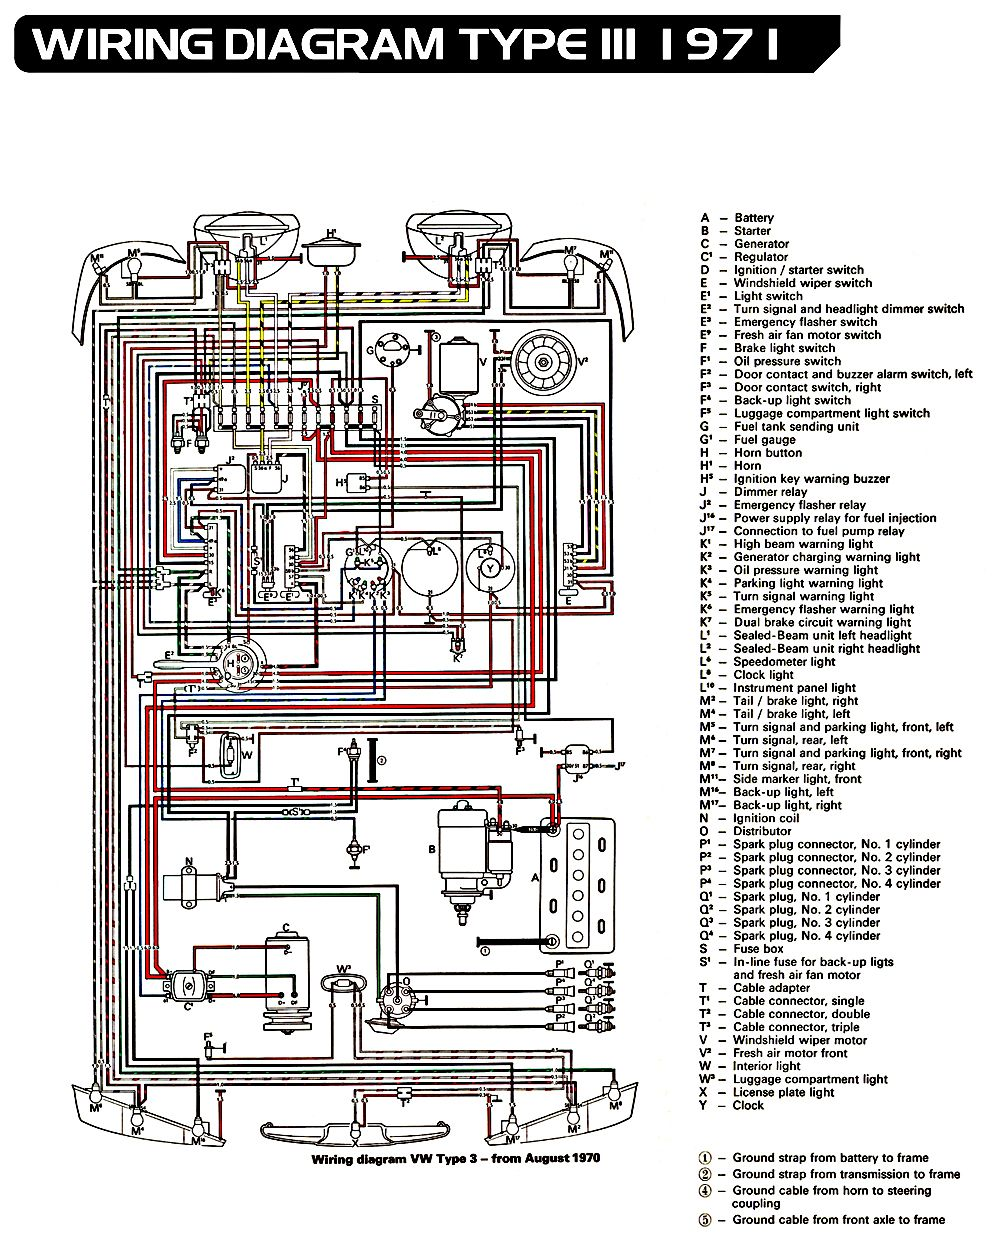 1971 Type 3 Vw Wiring Diagram